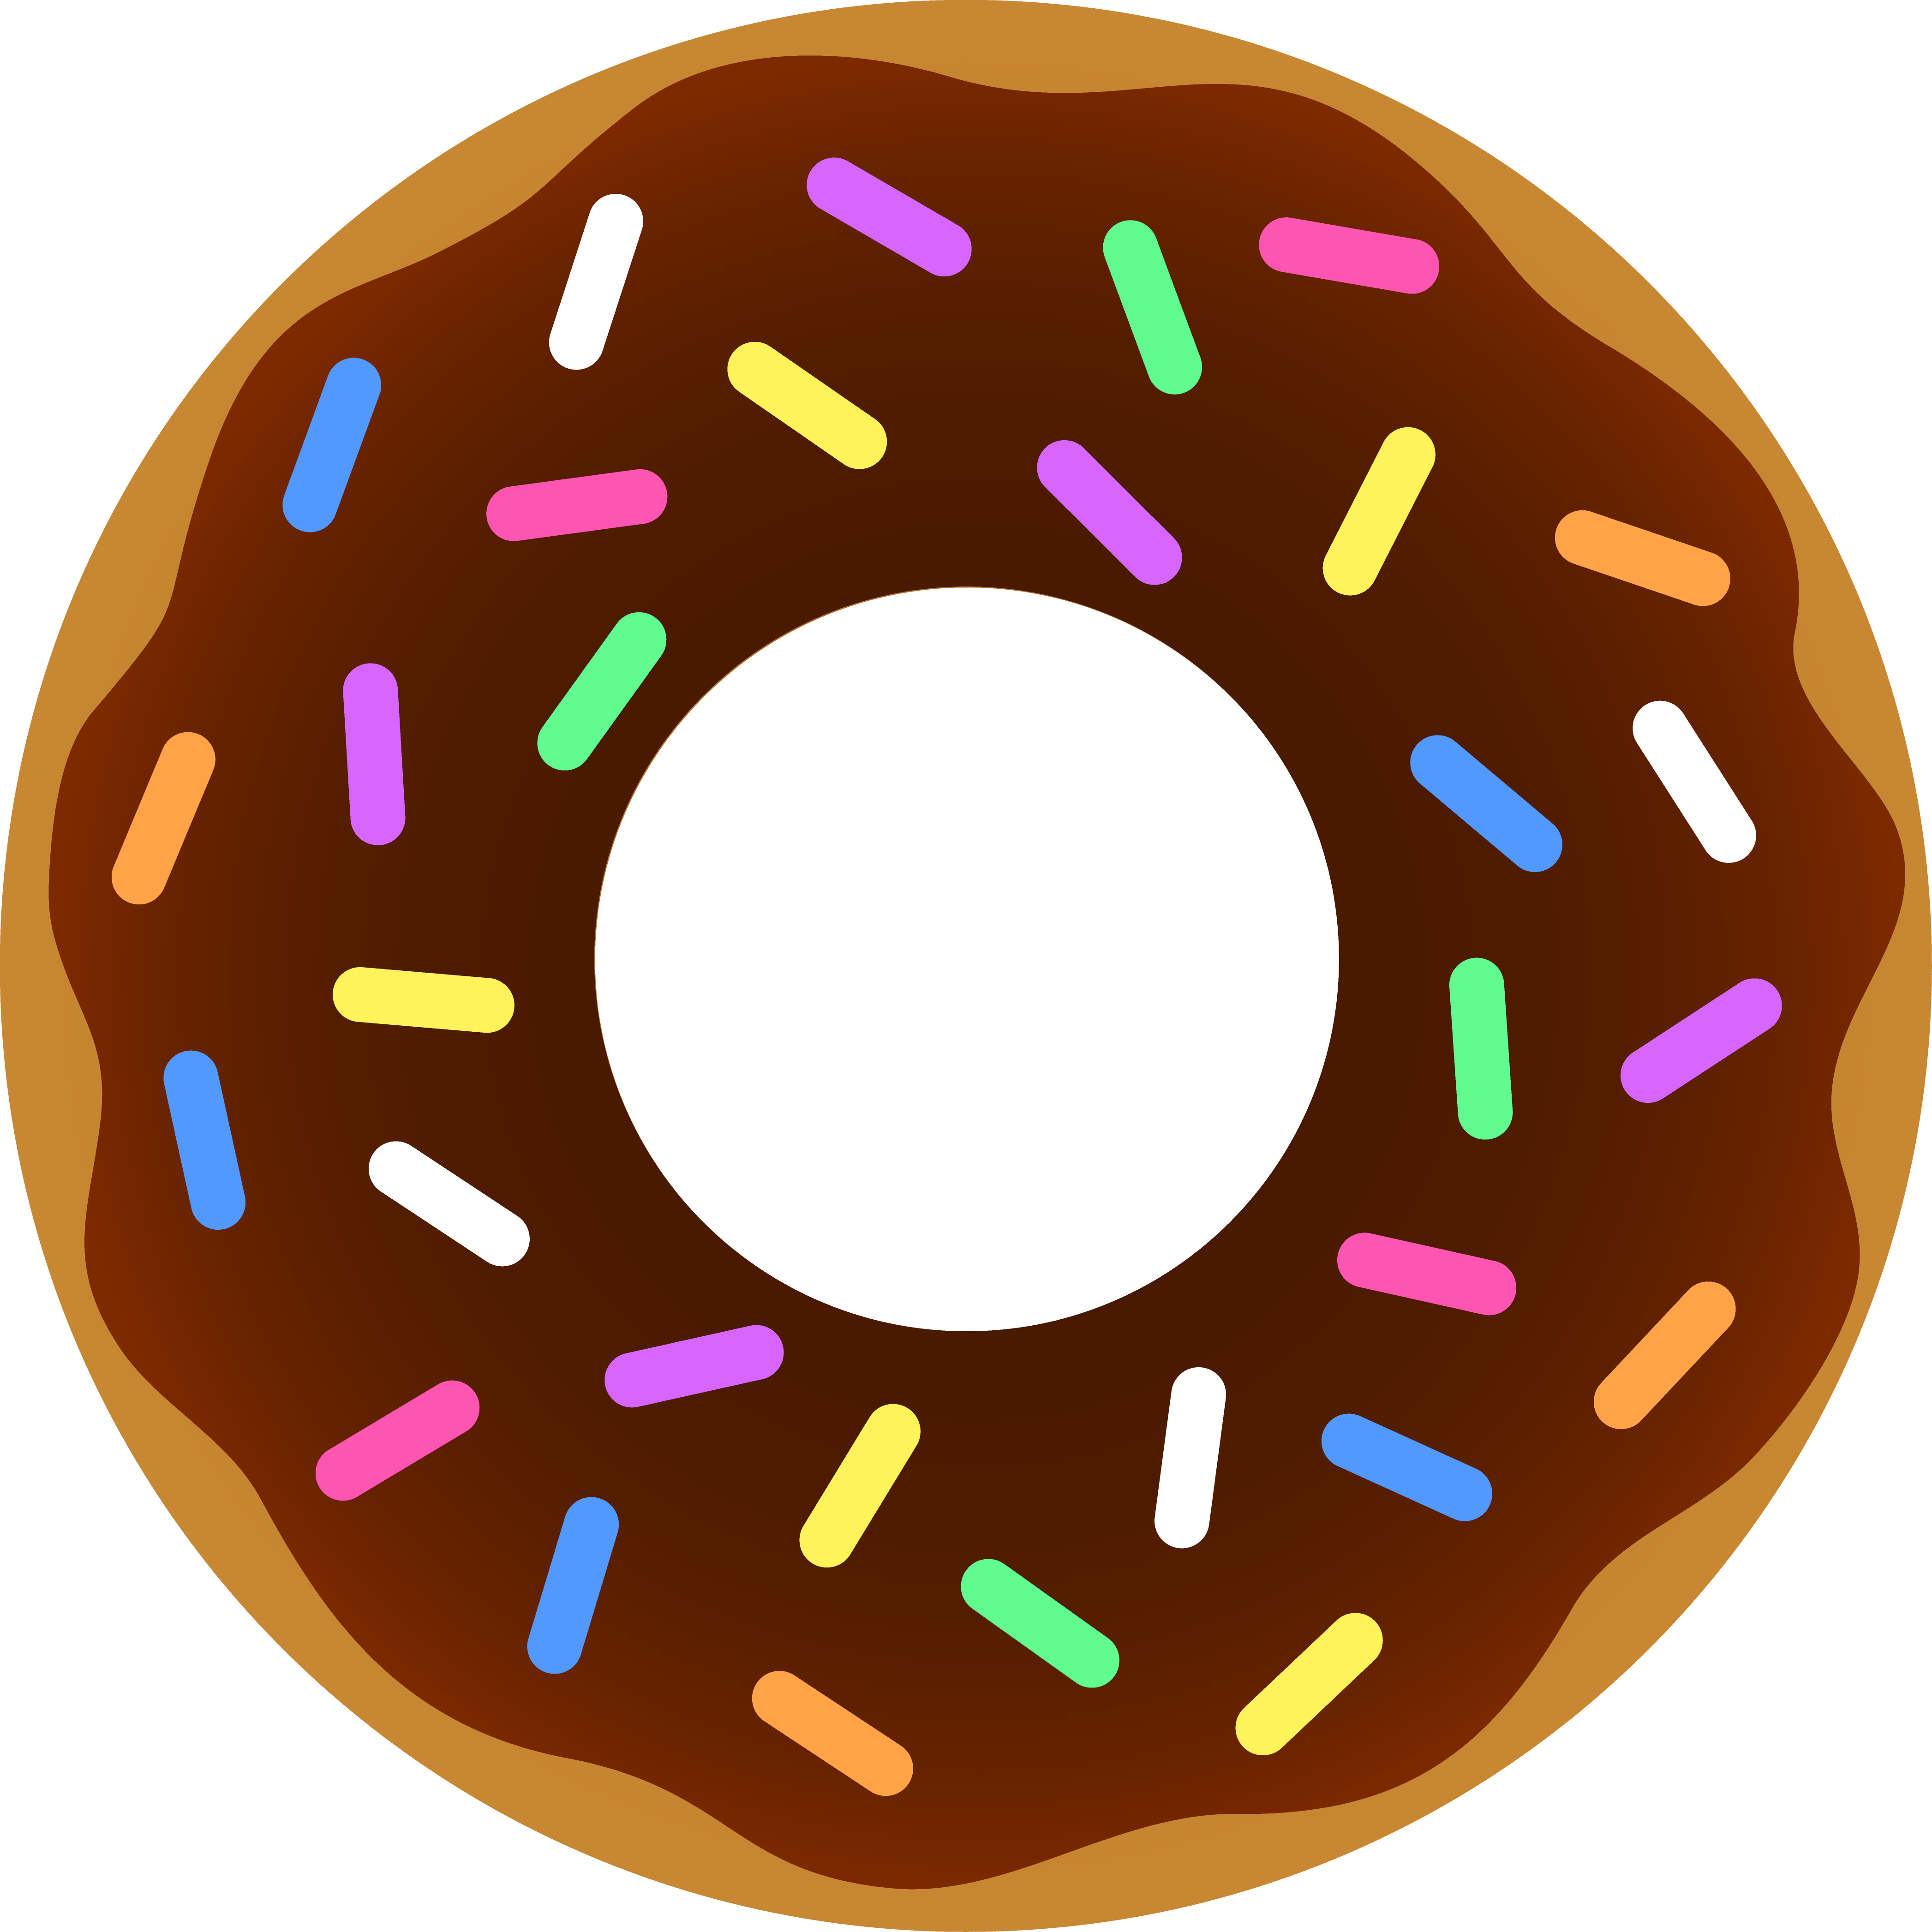 png black and white stock Free donut cliparts download. Doughnut clipart